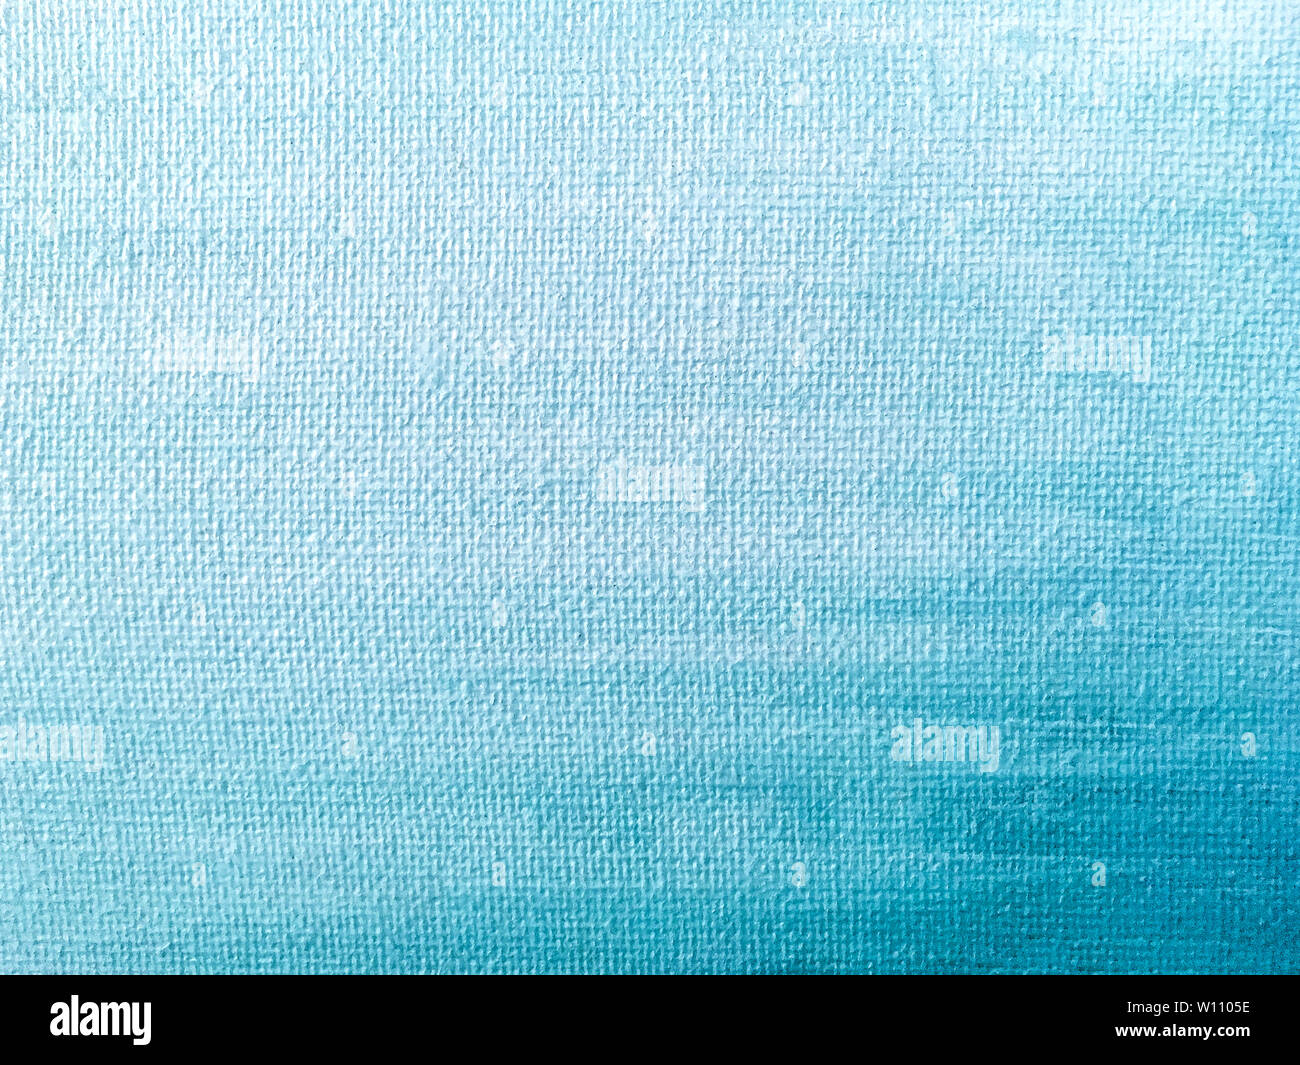 Abstract Art Background Light Blue And White Colors